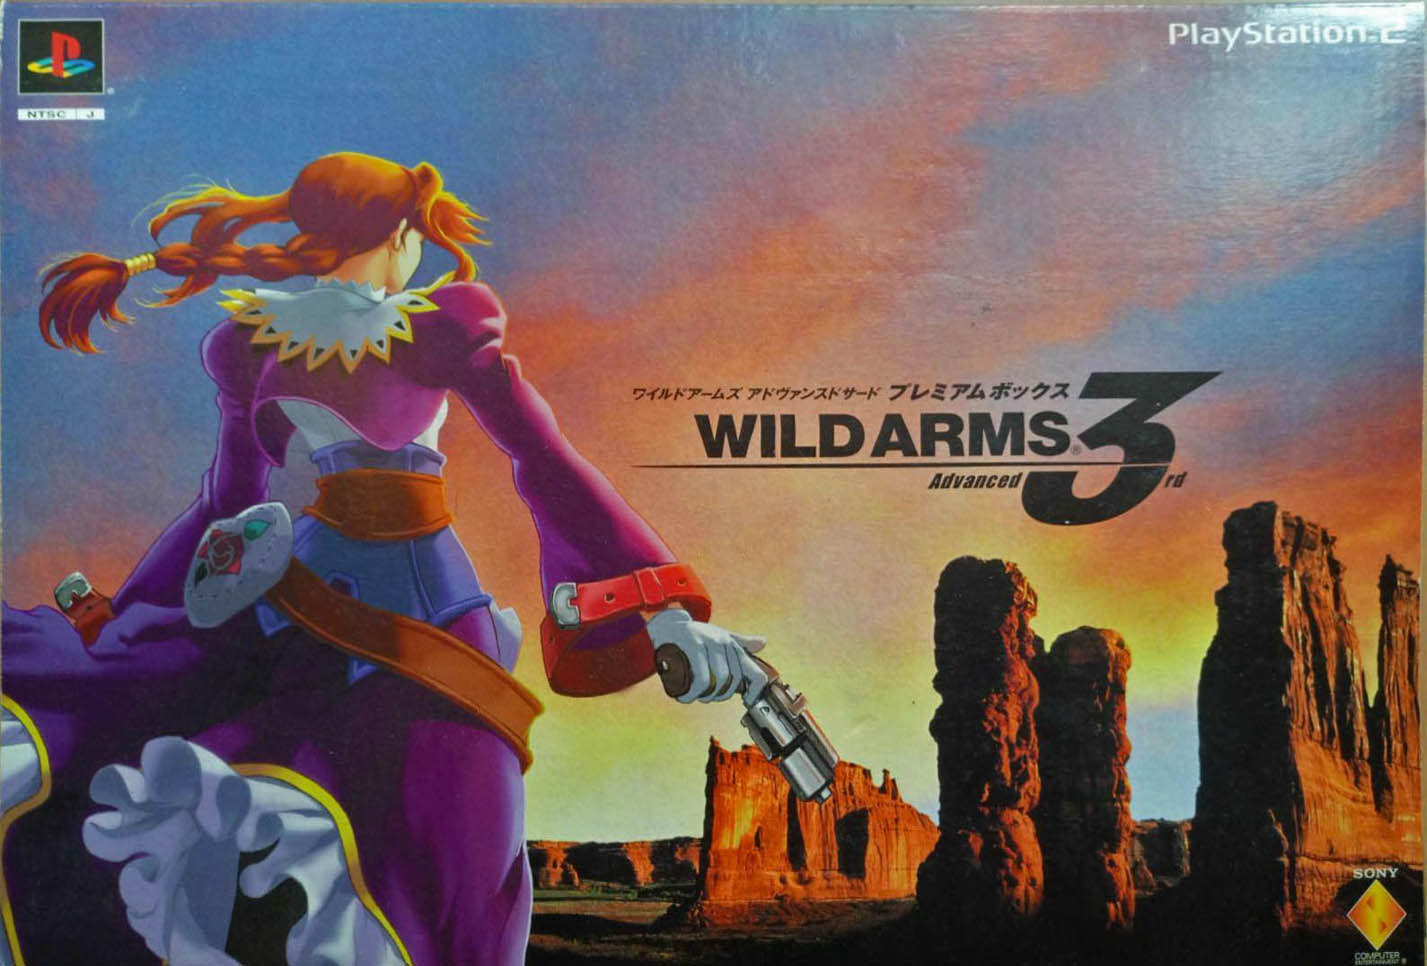 Wild Arms Advanced 3rd (Premium Box) издание в Япония